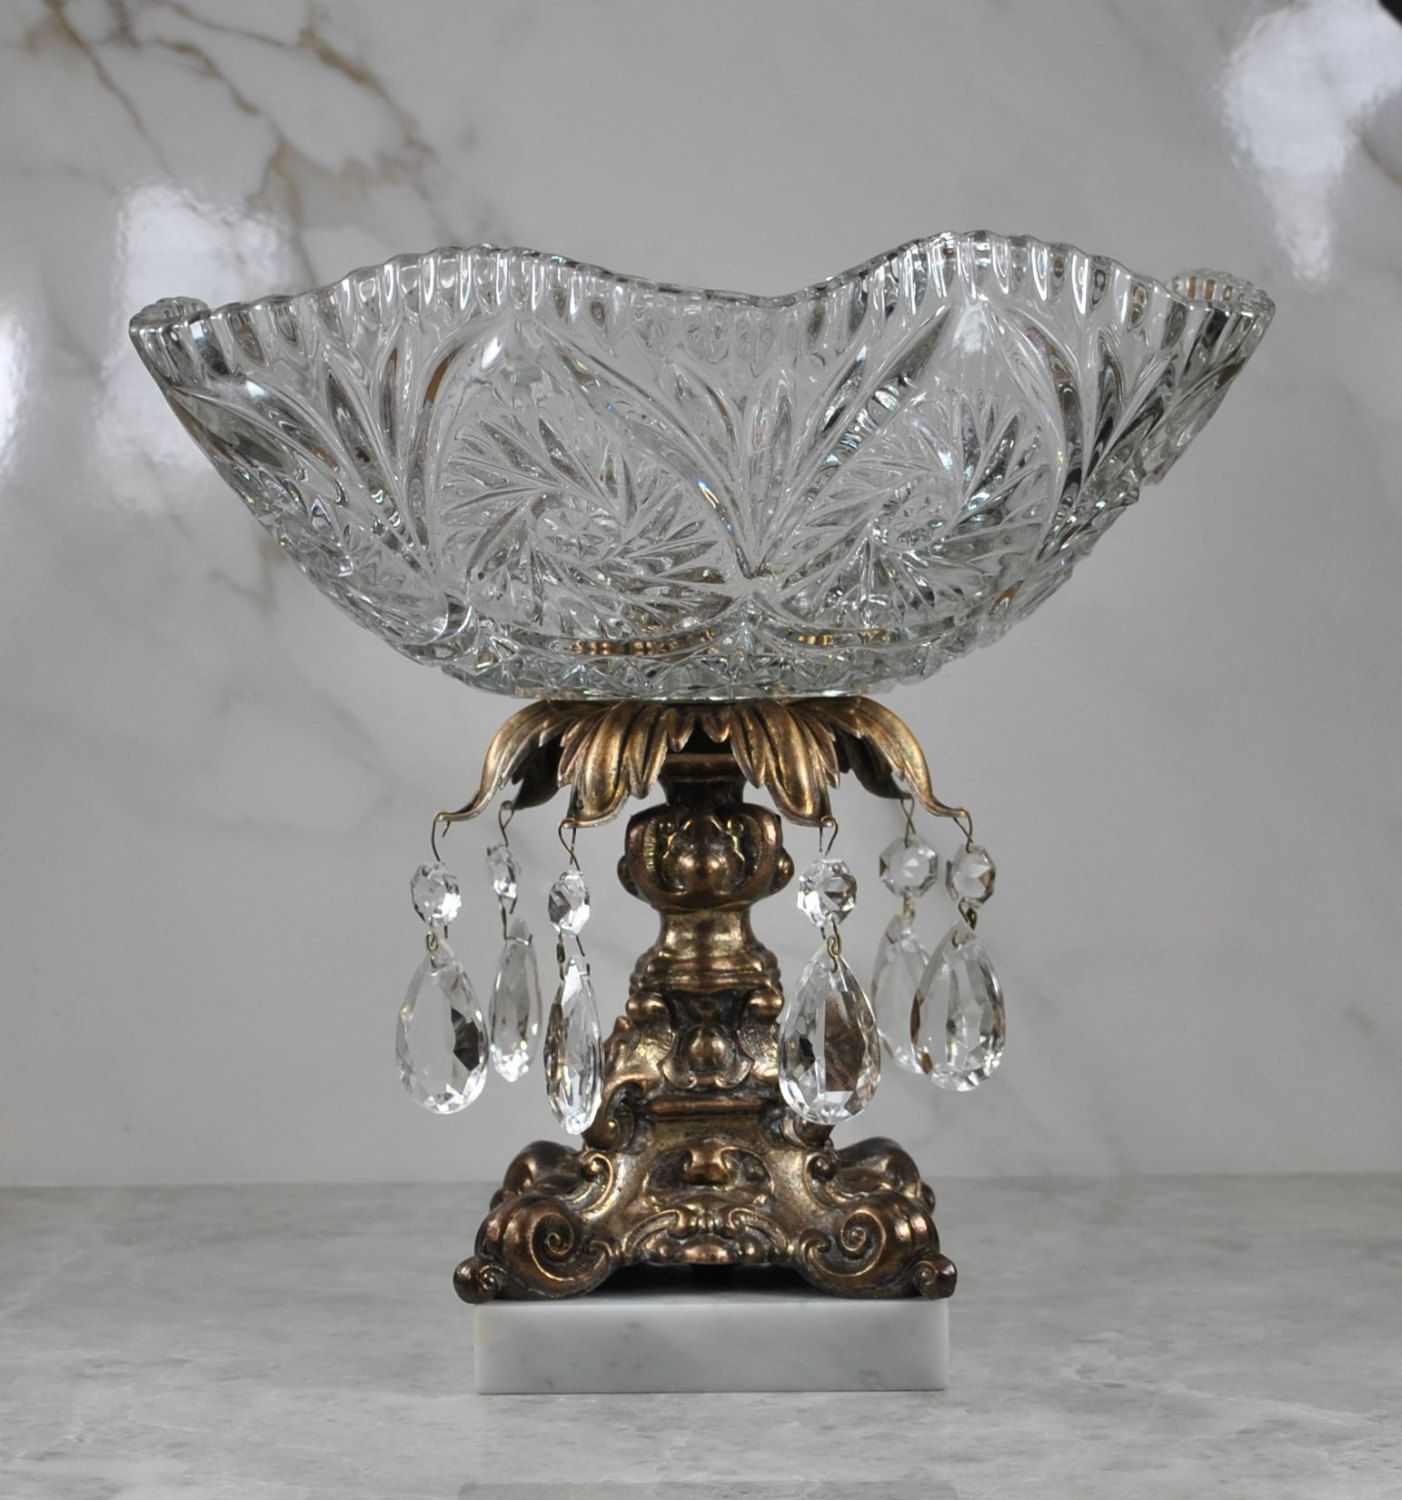 Vintage Crystal Chandelier Bowl Centerpiece Make In Italy Gilt Bronze Pedestal Marble Base Dish Cake Plate Fruit